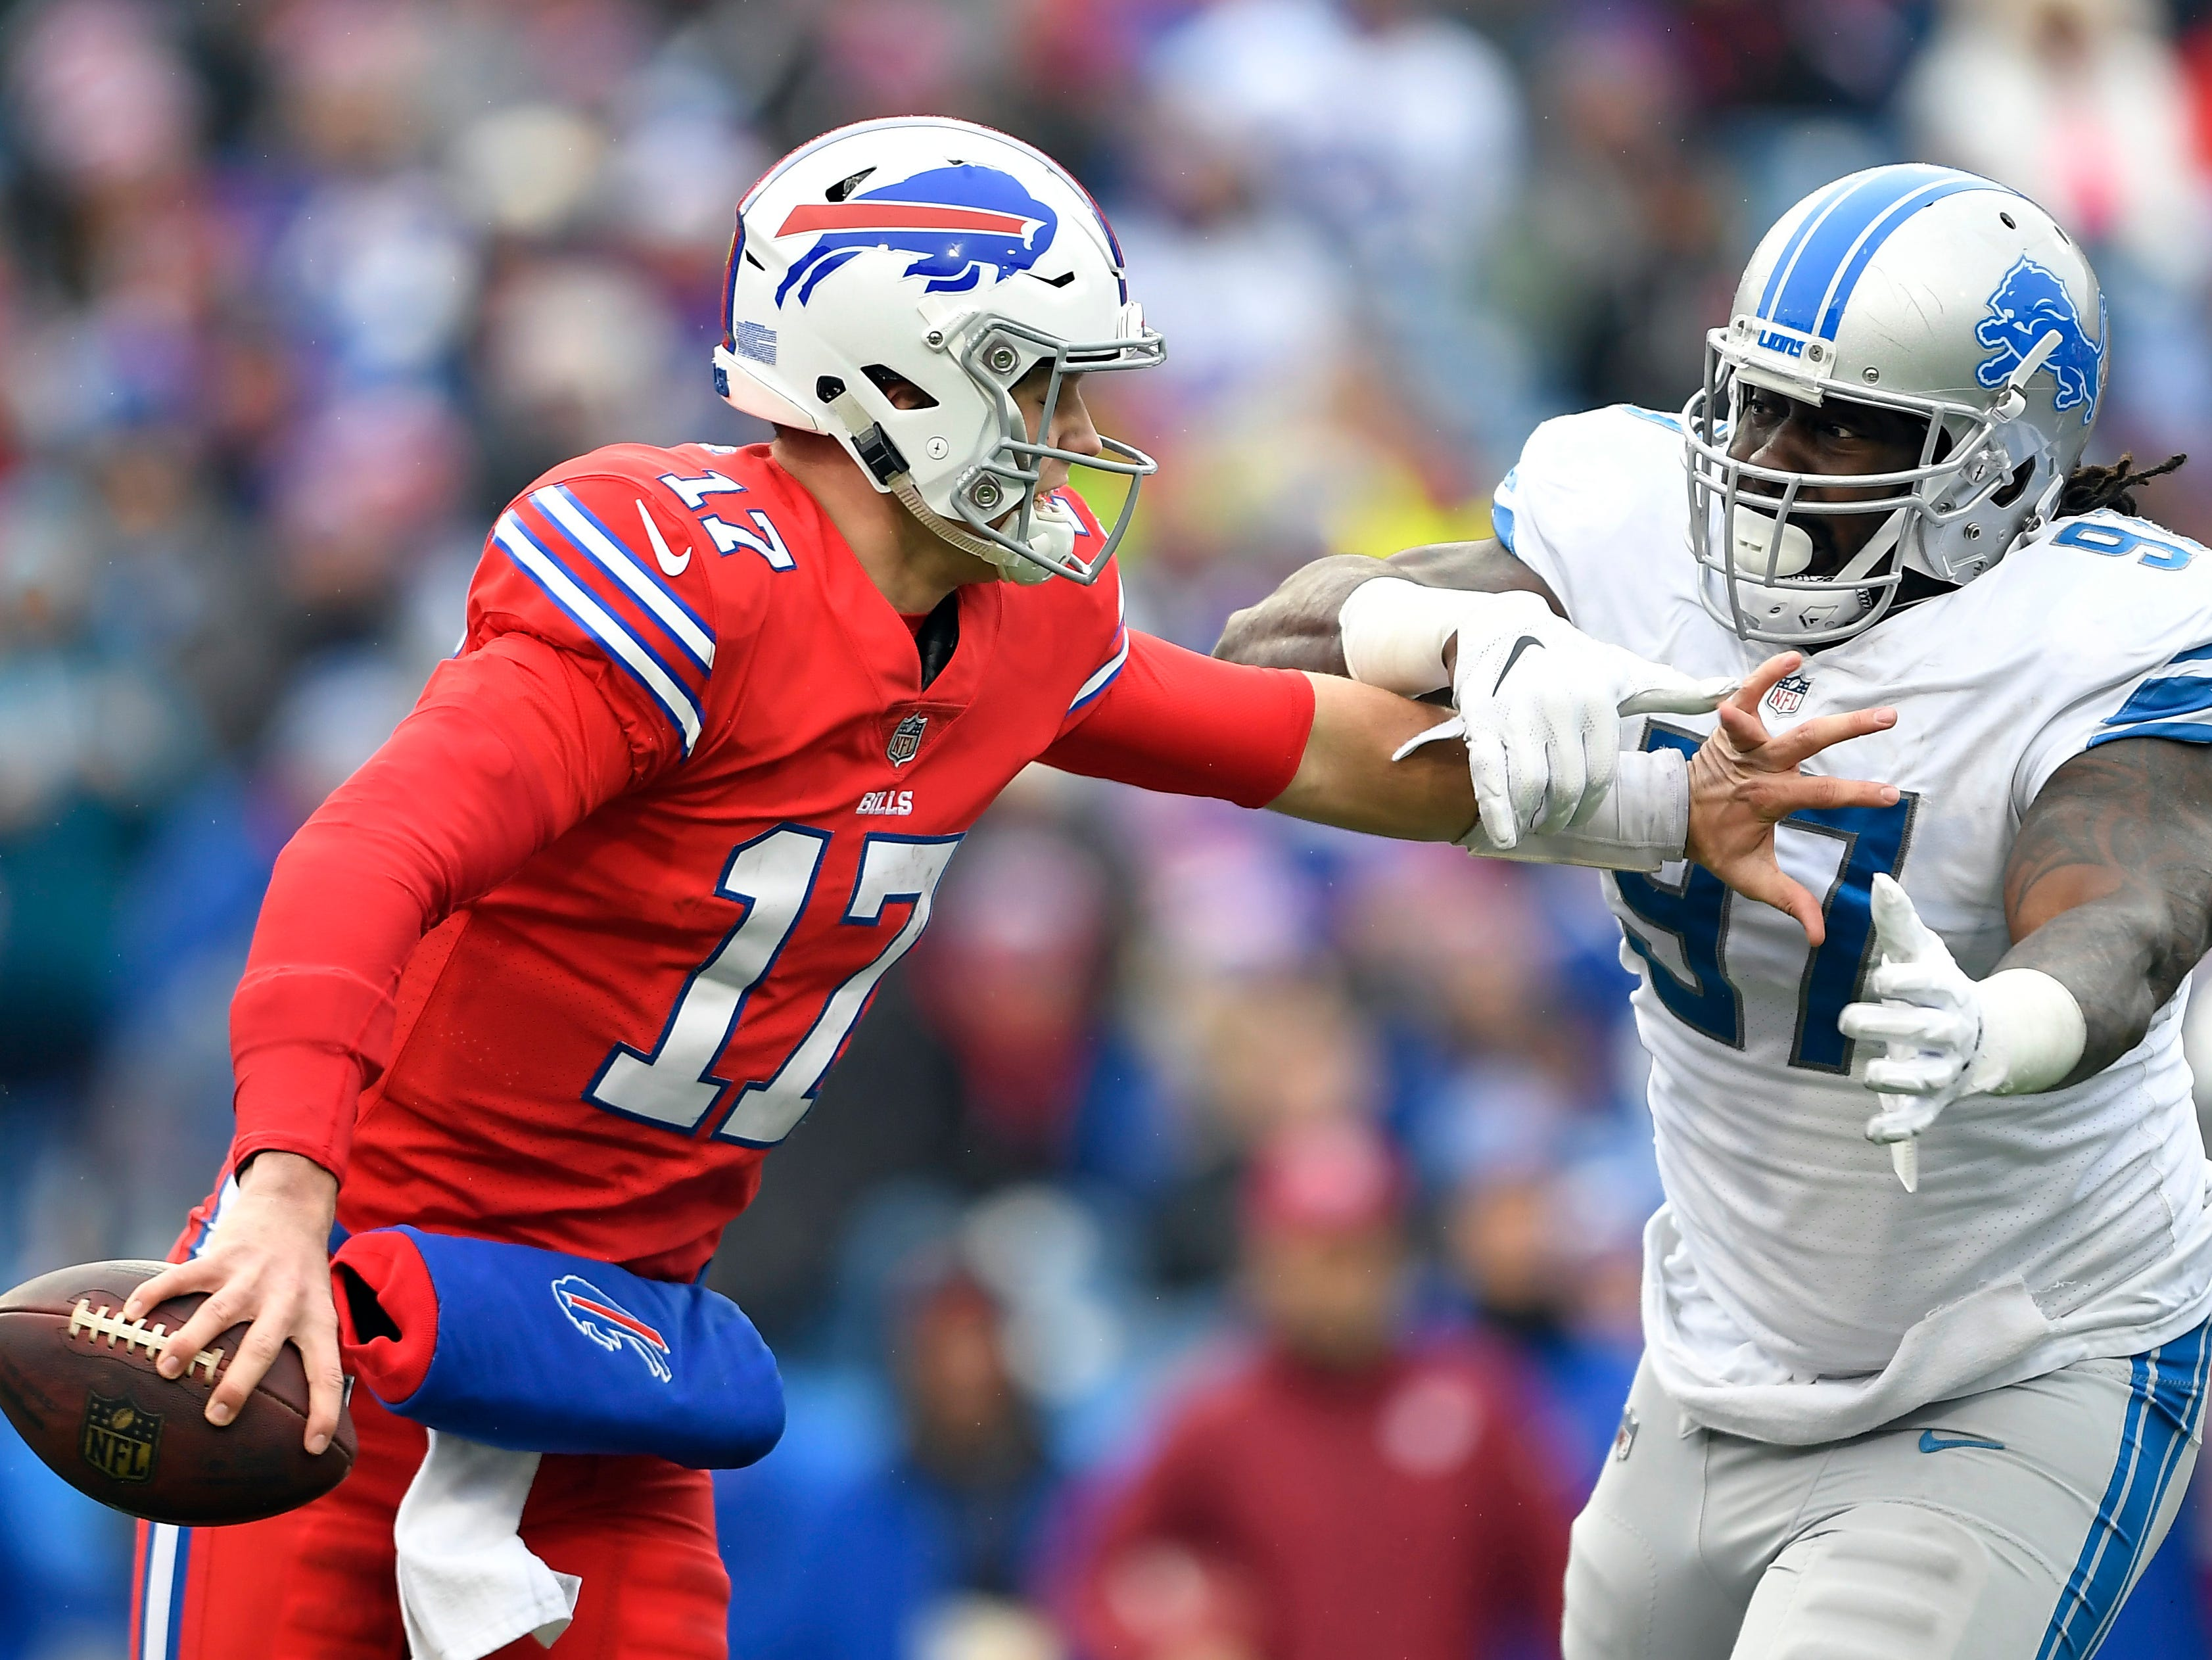 Buffalo Bills quarterback Josh Allen (17) avoids a tackle by Detroit Lions defensive tackle Ricky Jean Francois (97) during the first half.